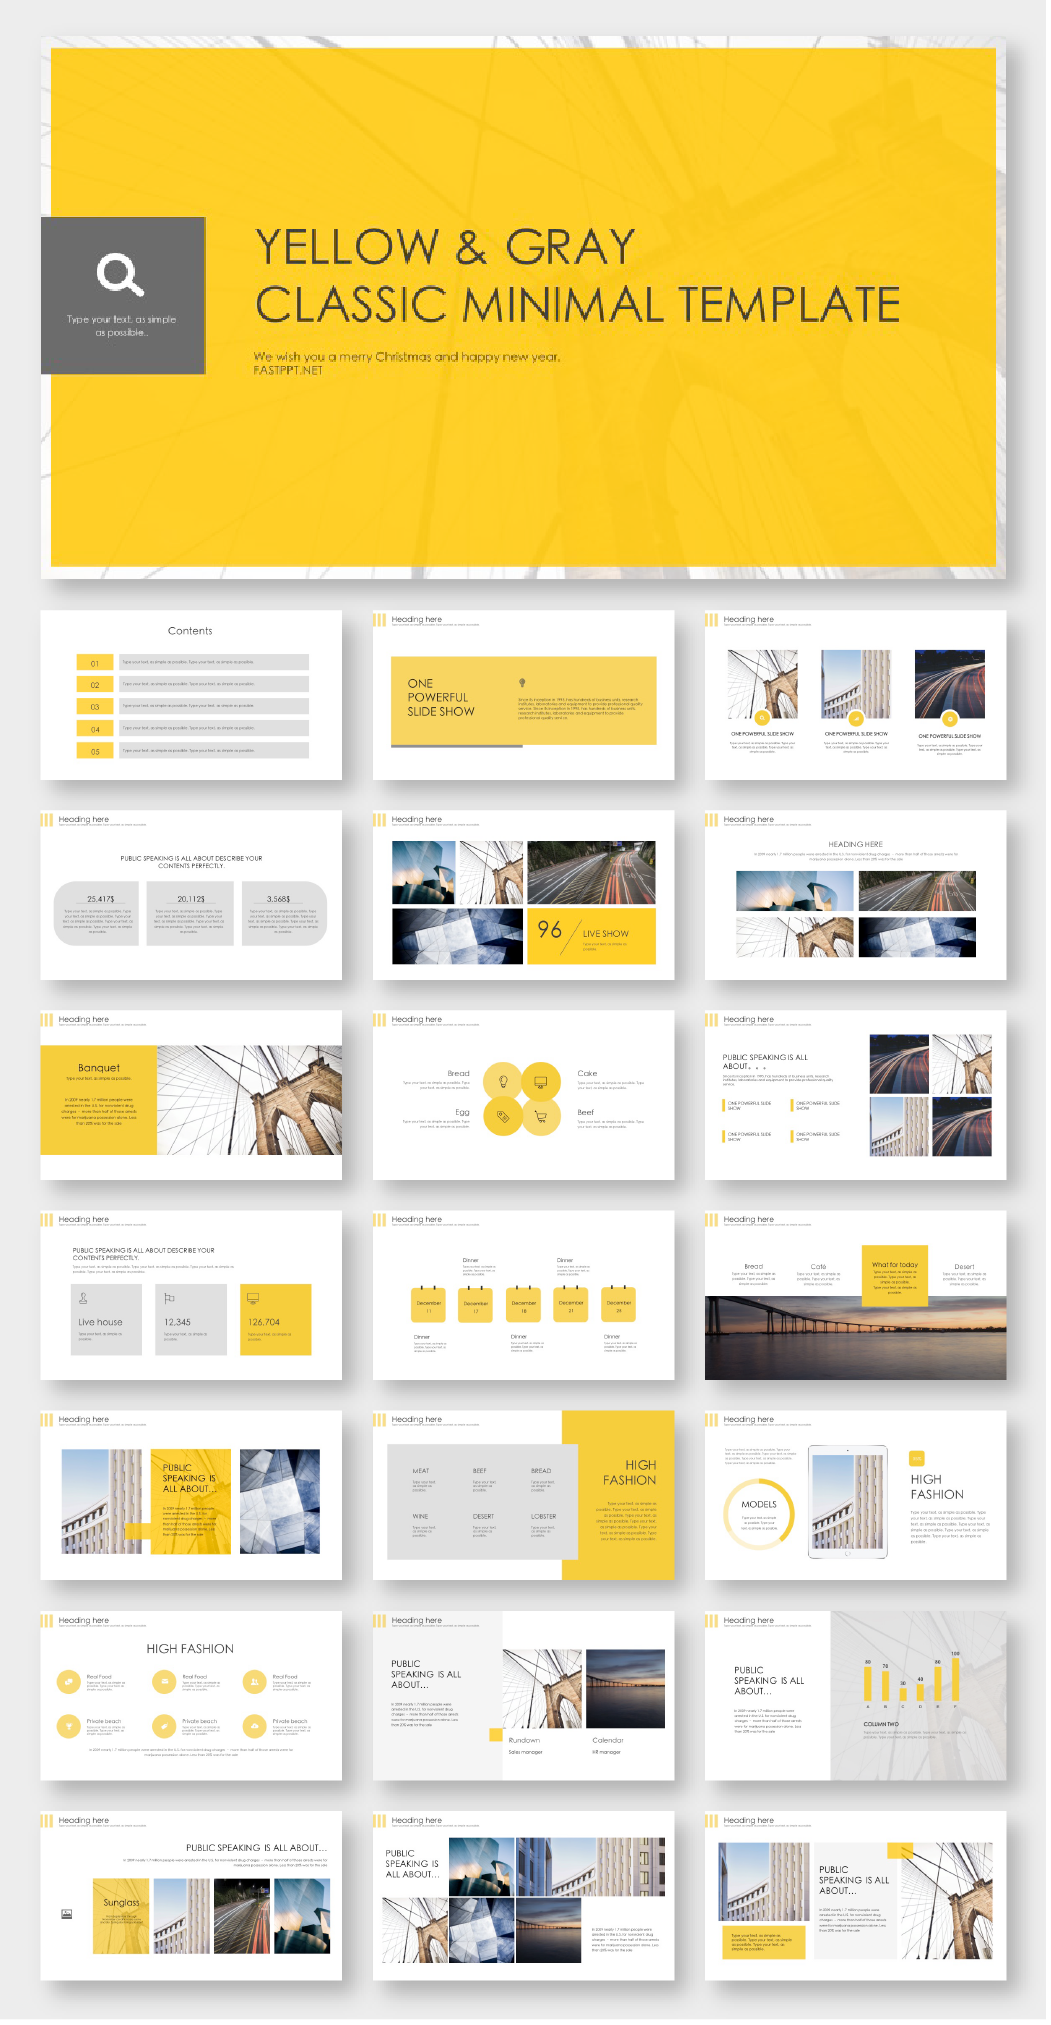 Cool Business & Company Introduction PowerPoint Template is part of Powerpoint design templates, Company profile design, Web layout design, Presentation design layout, Web design tutorials, Presentation design - Easy customizable contents  Editable charts  No Photoshop or other tools needed! Save Time  Drag & Drop Image  Image Placeholder  Easy to use! Beginner friendly!